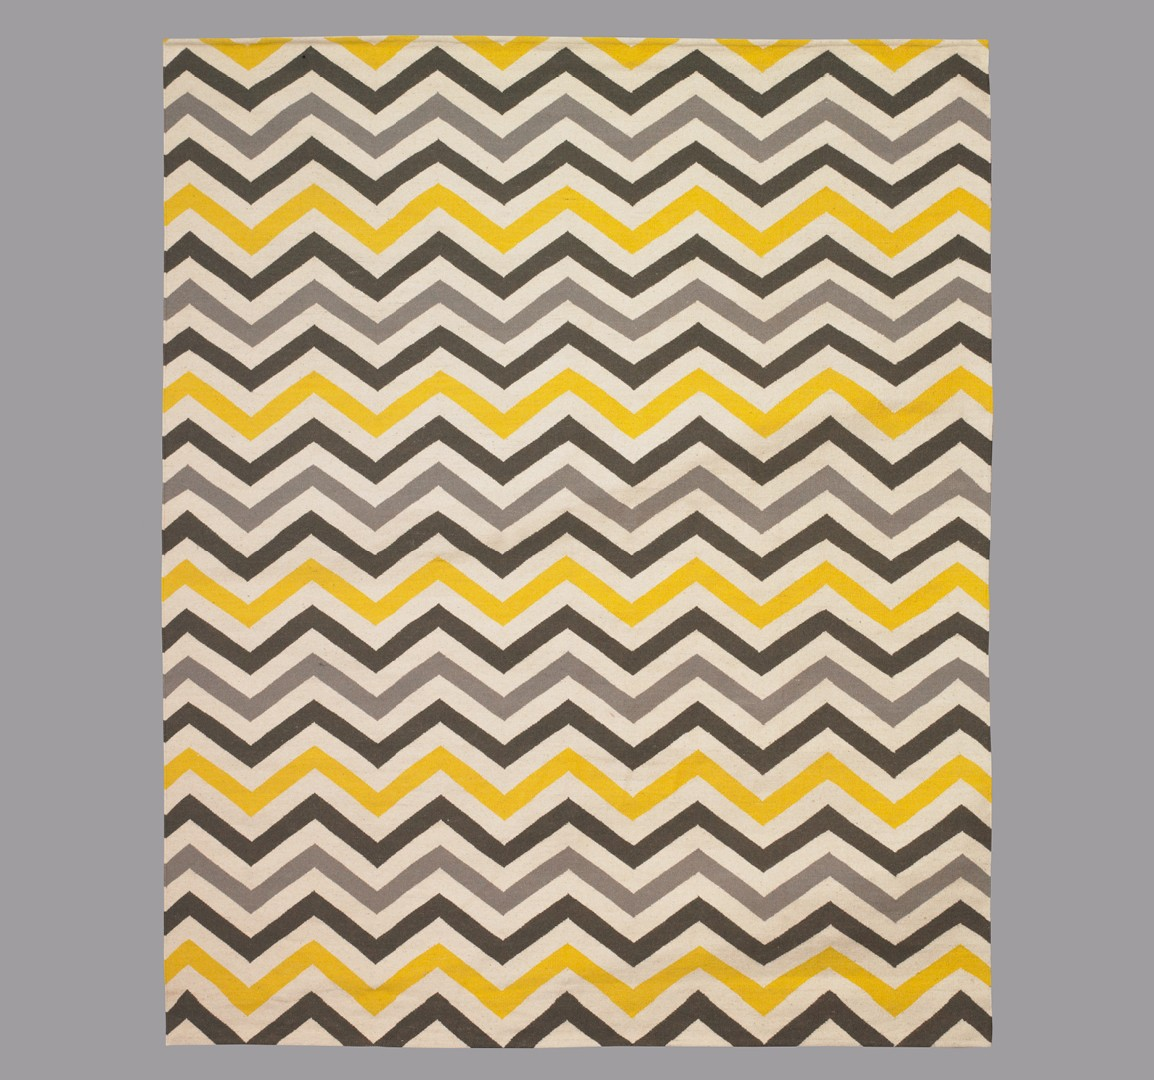 Multi Color Chevron Rug | Chevron Rug | Beige Chevron Rug